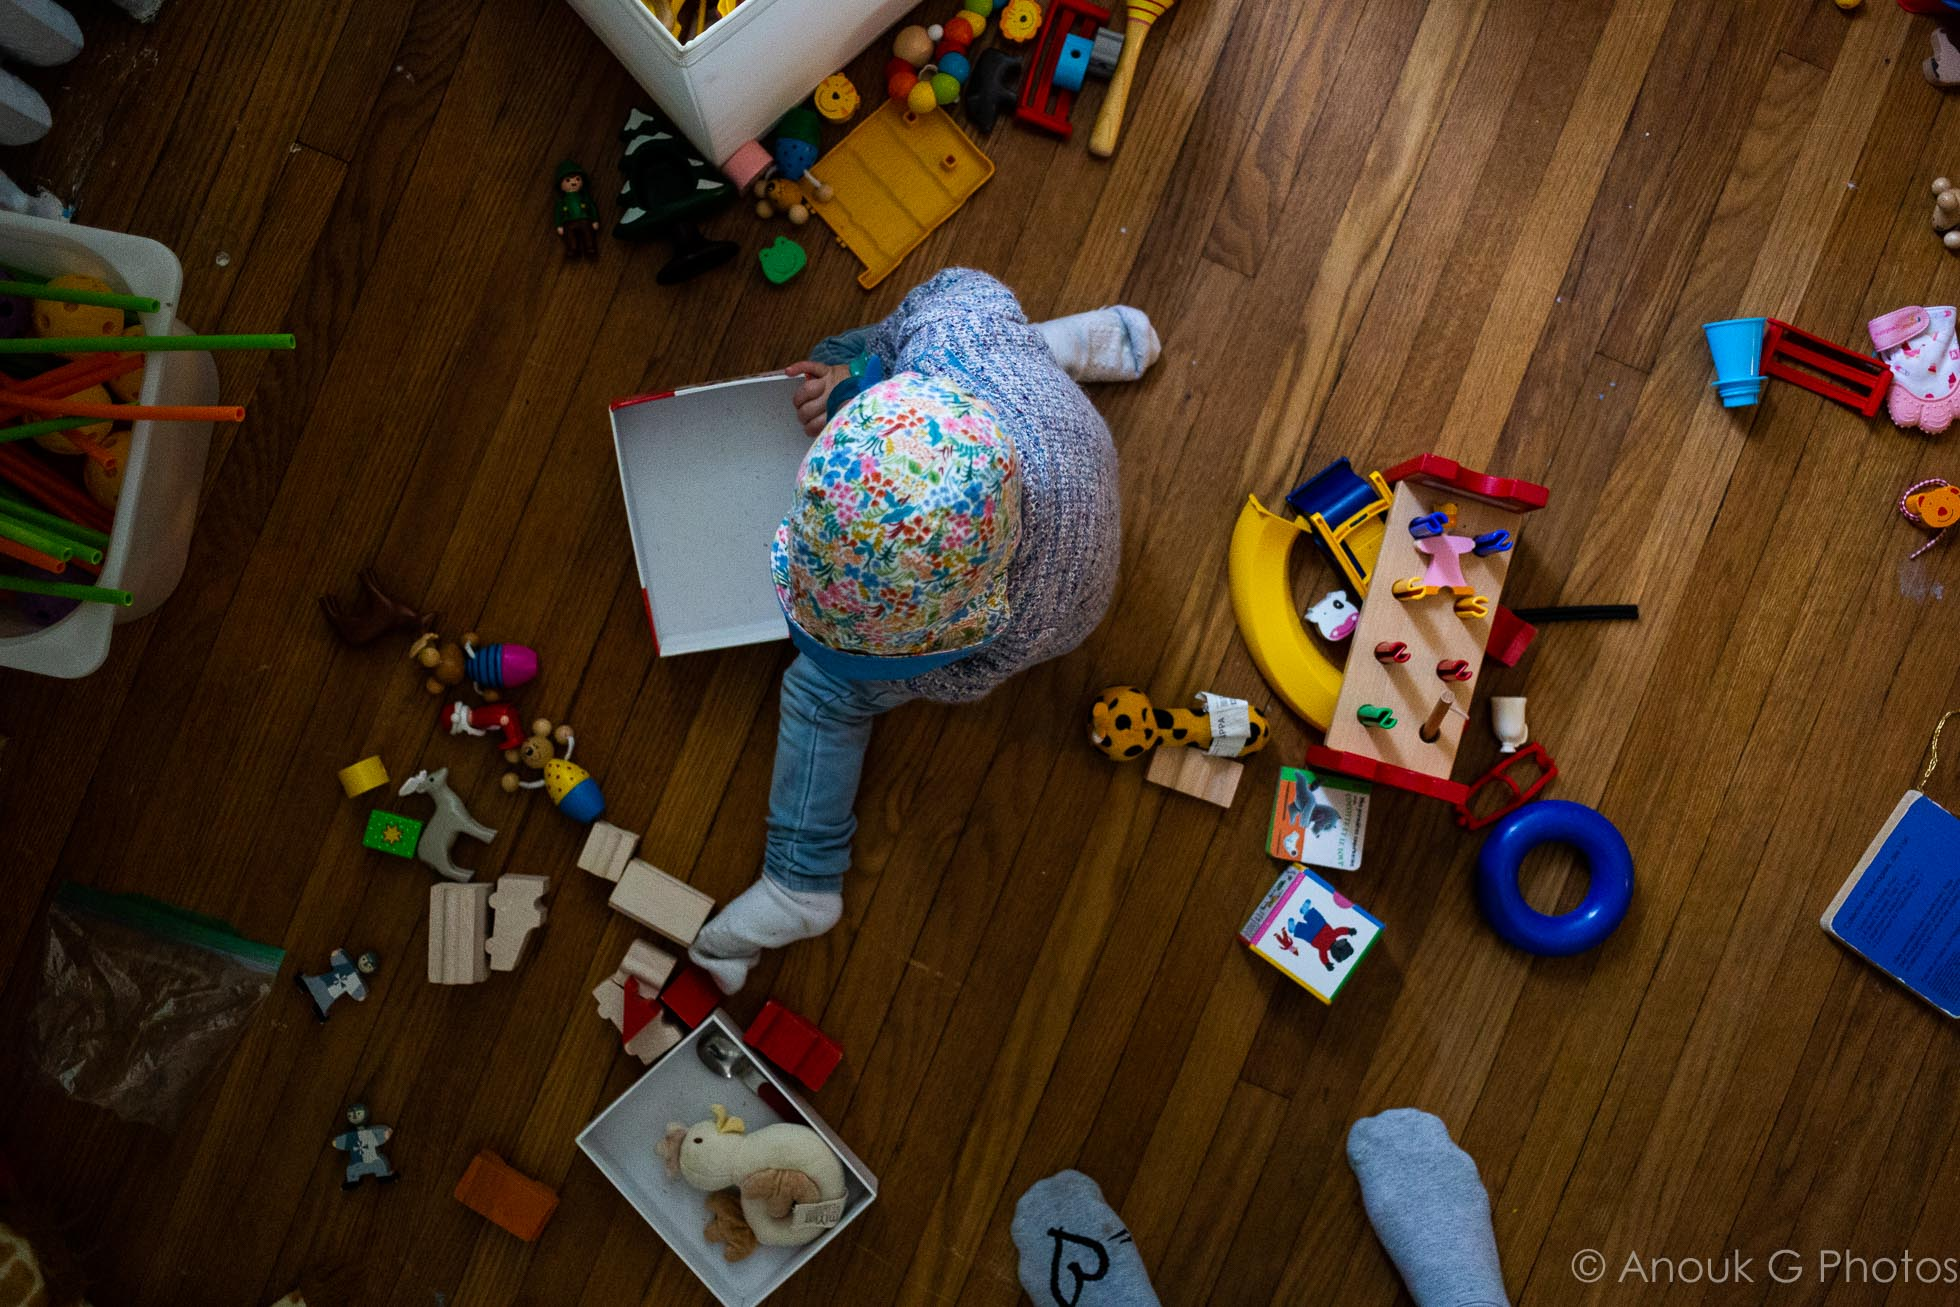 0266-baby's-room-mess-AnoukGPhotos